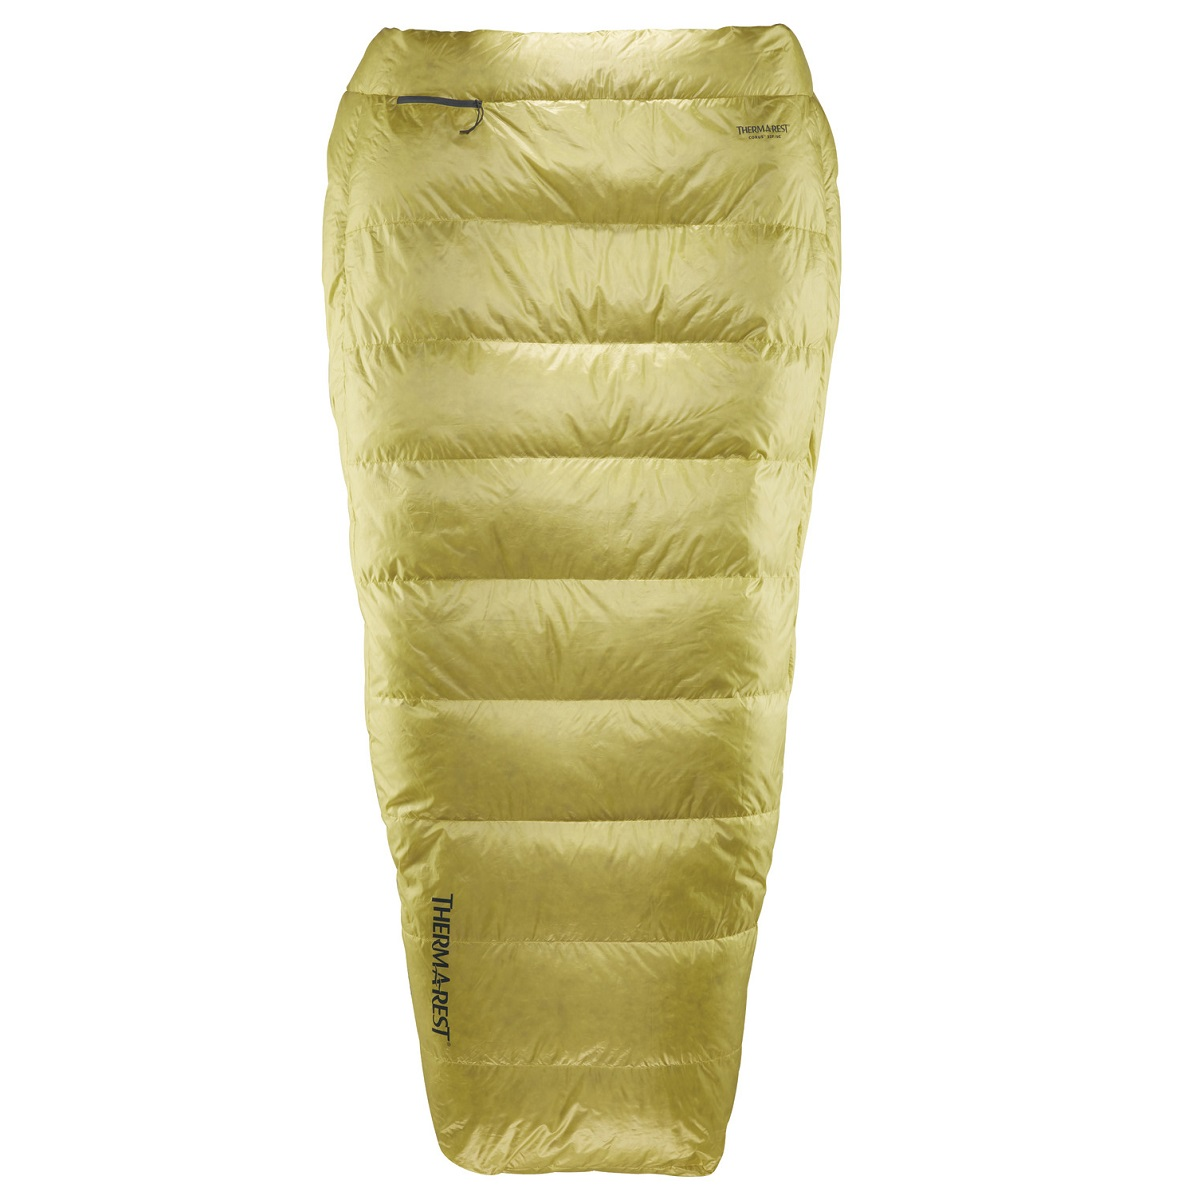 Therm-A-Rest Corus 32F Down Quilt - Top View